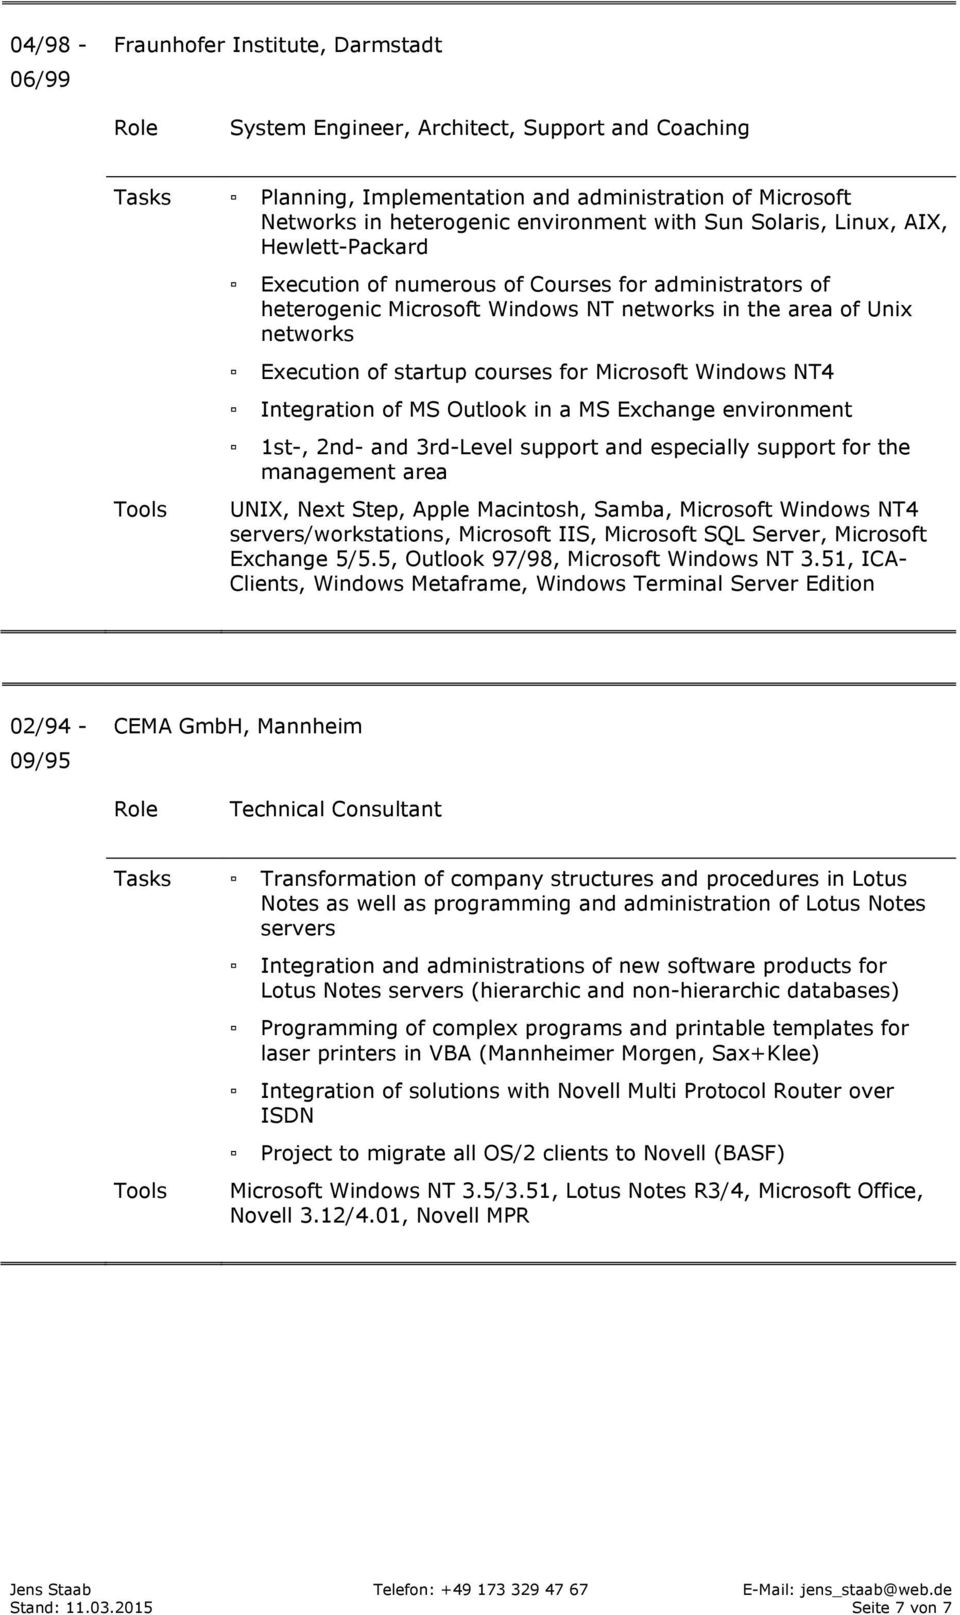 Microsoft Windows NT4 Integration of MS Outlook in a MS Exchange environment 1st-, 2nd- and 3rd-Level support and especially support for the management area UNIX, Next Step, Apple Macintosh, Samba,